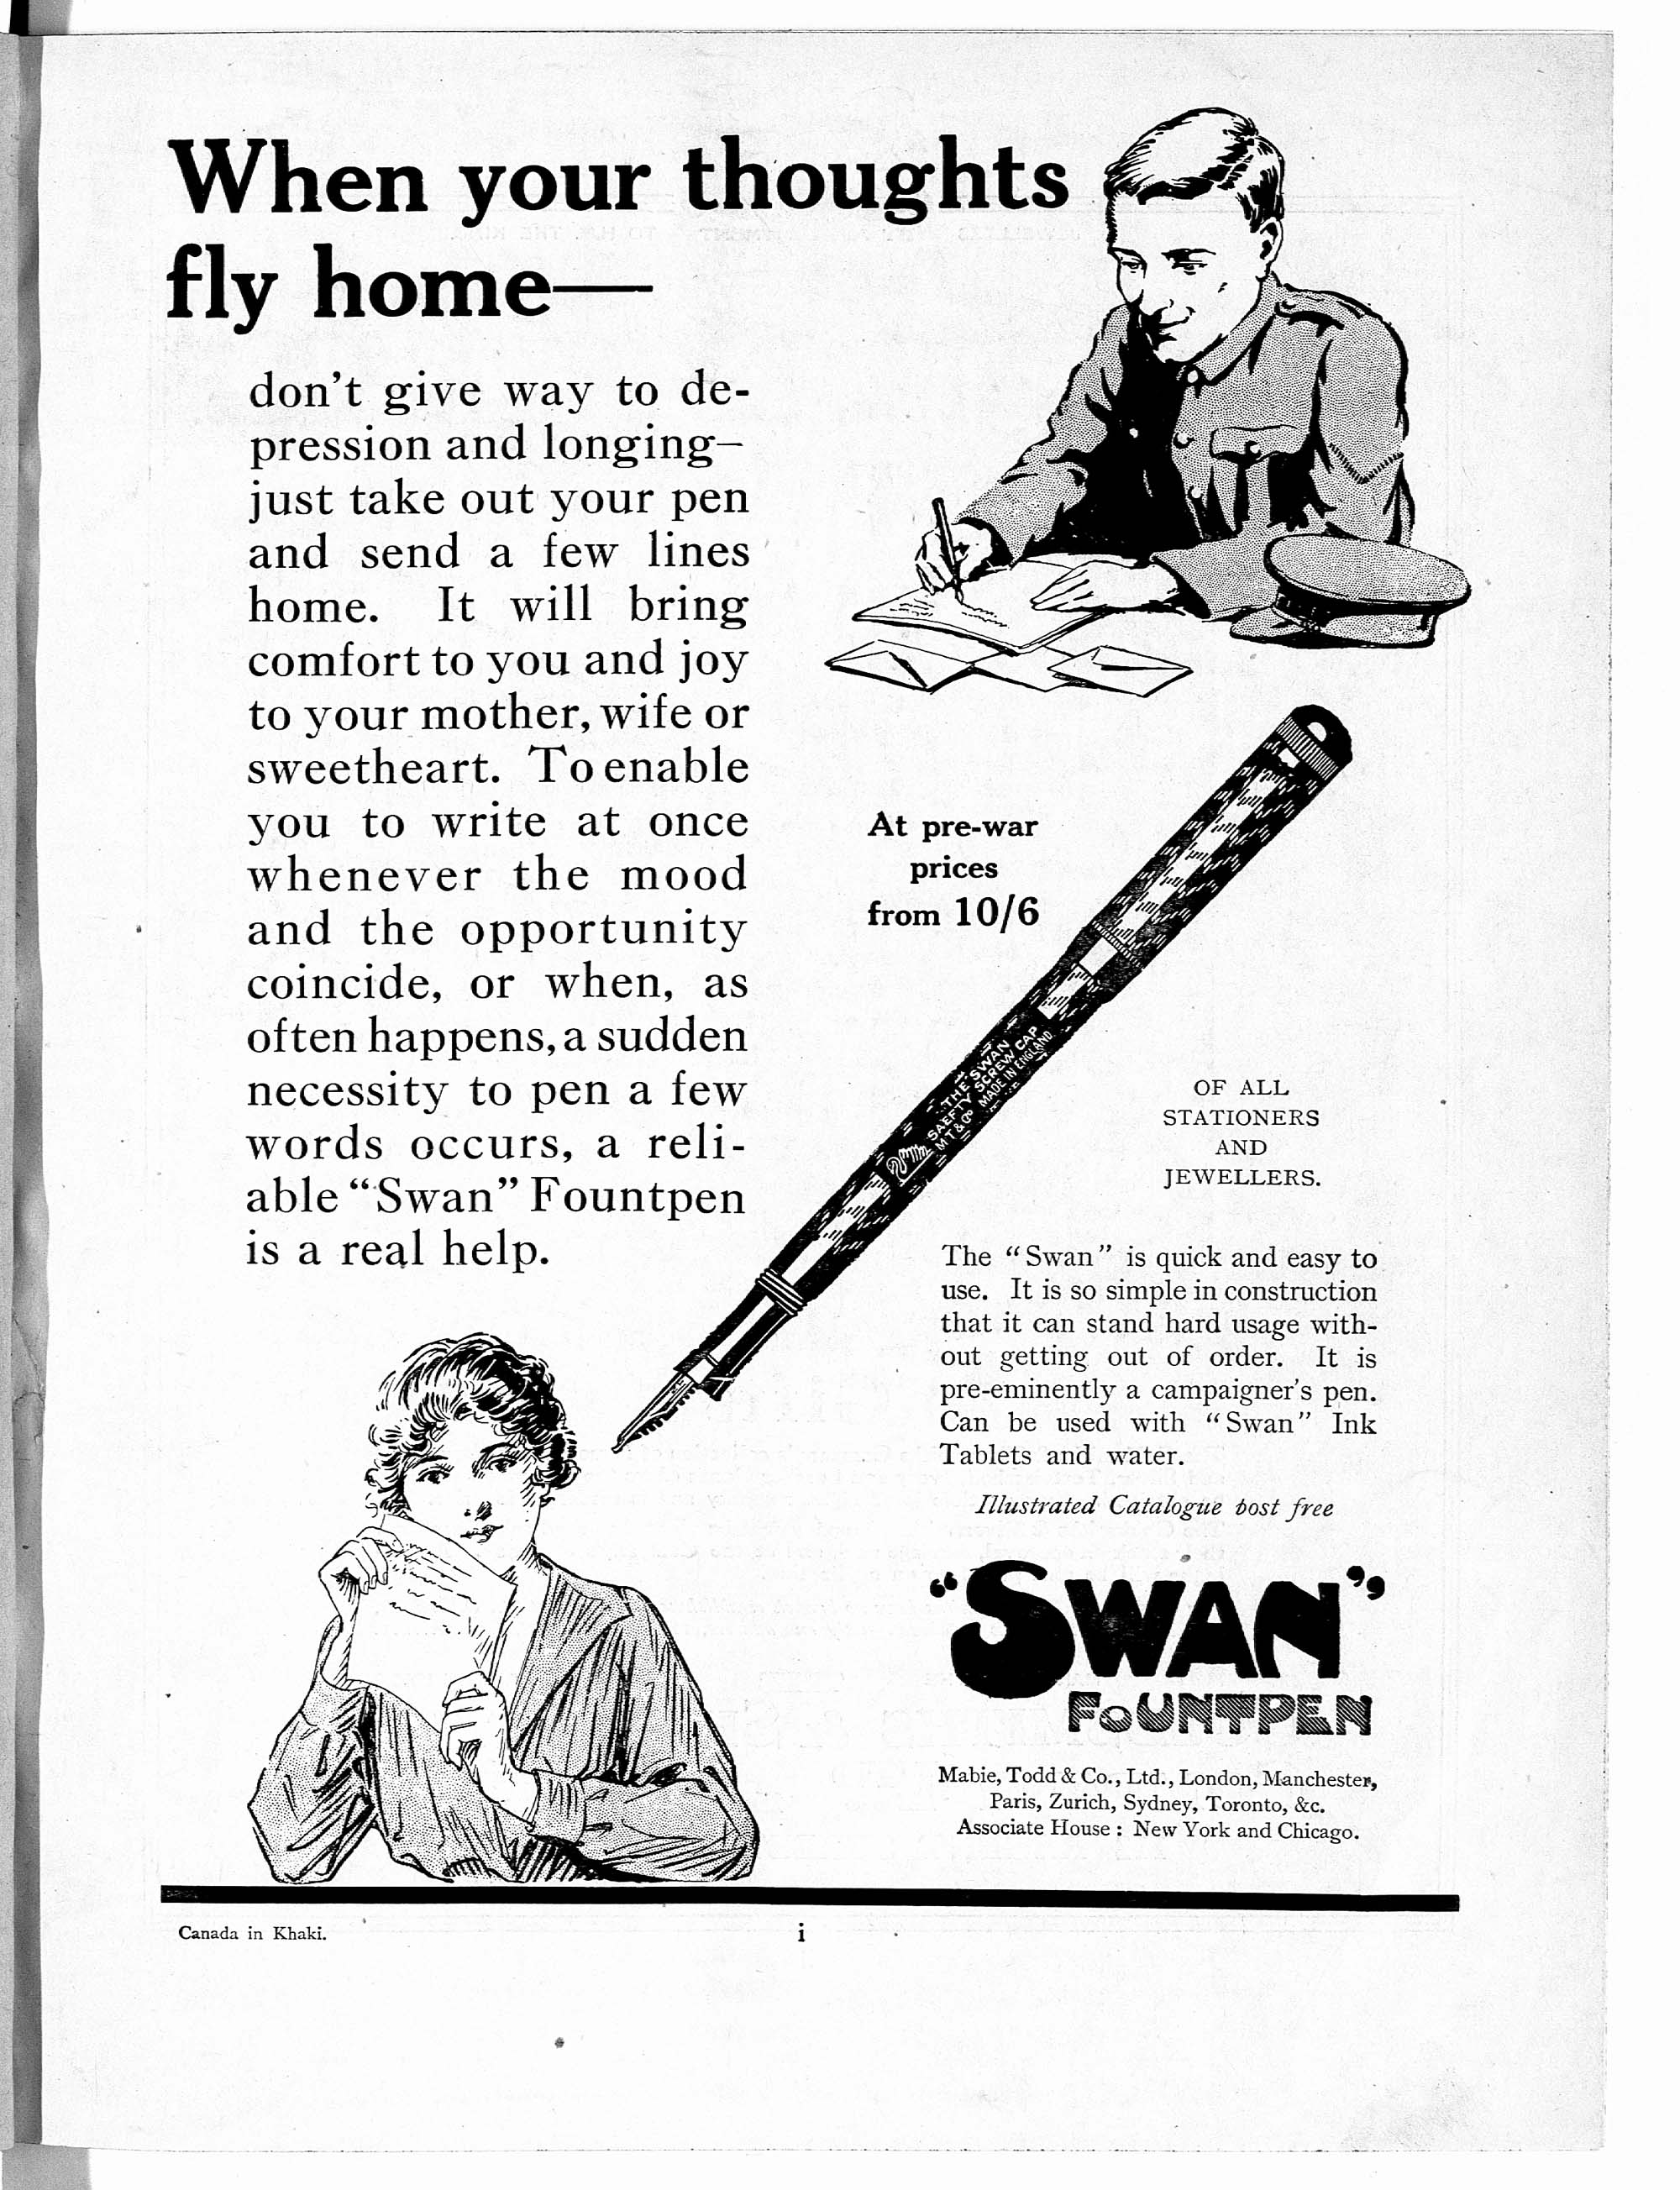 When your thoughts fly home - advert for Swan Fountpen